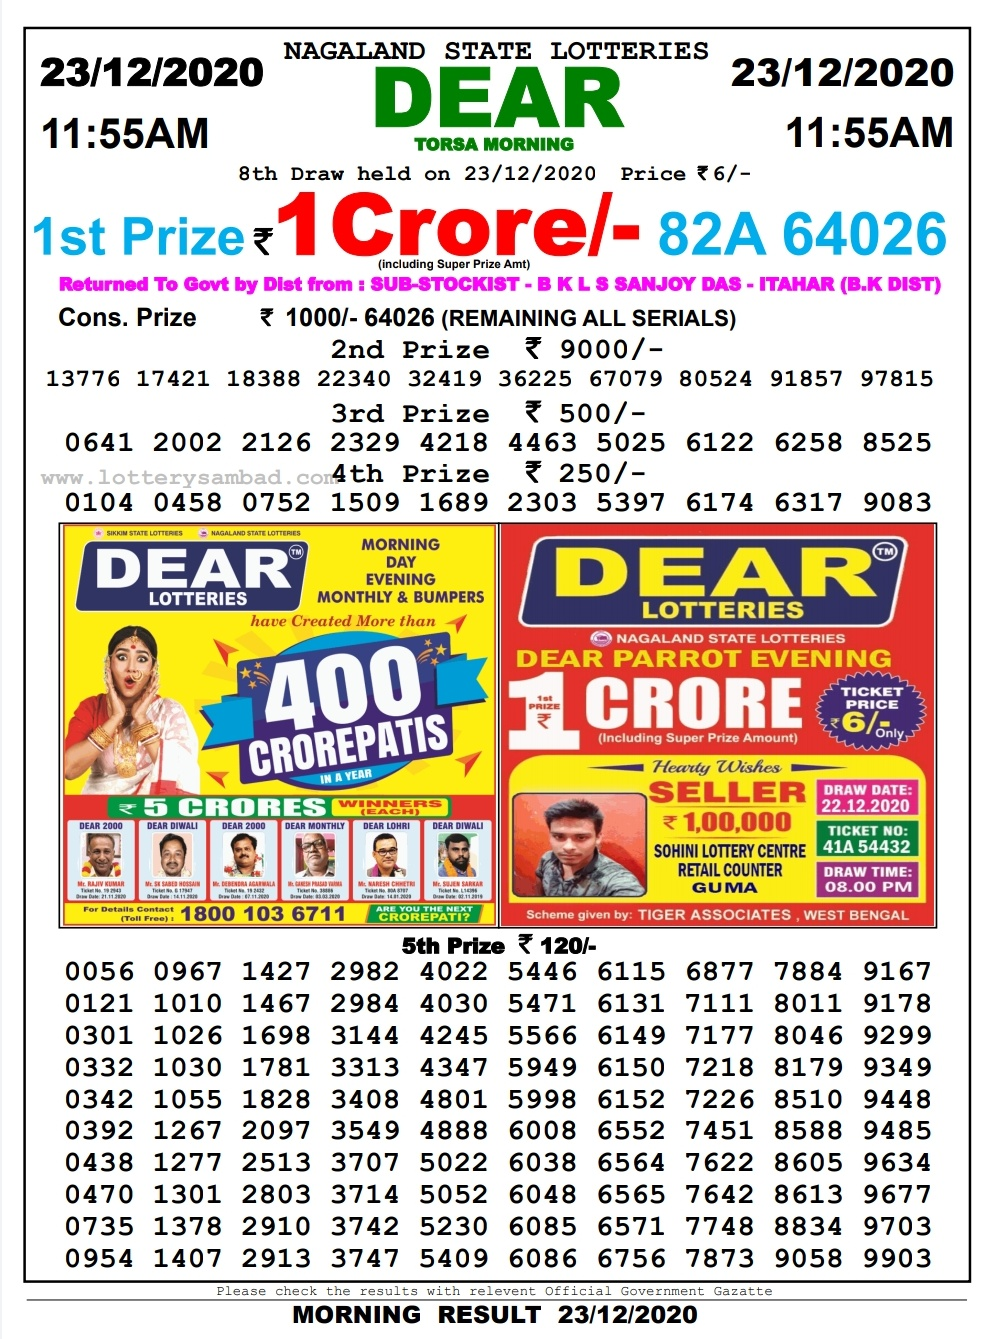 dear lottery result today morning 11:55 live